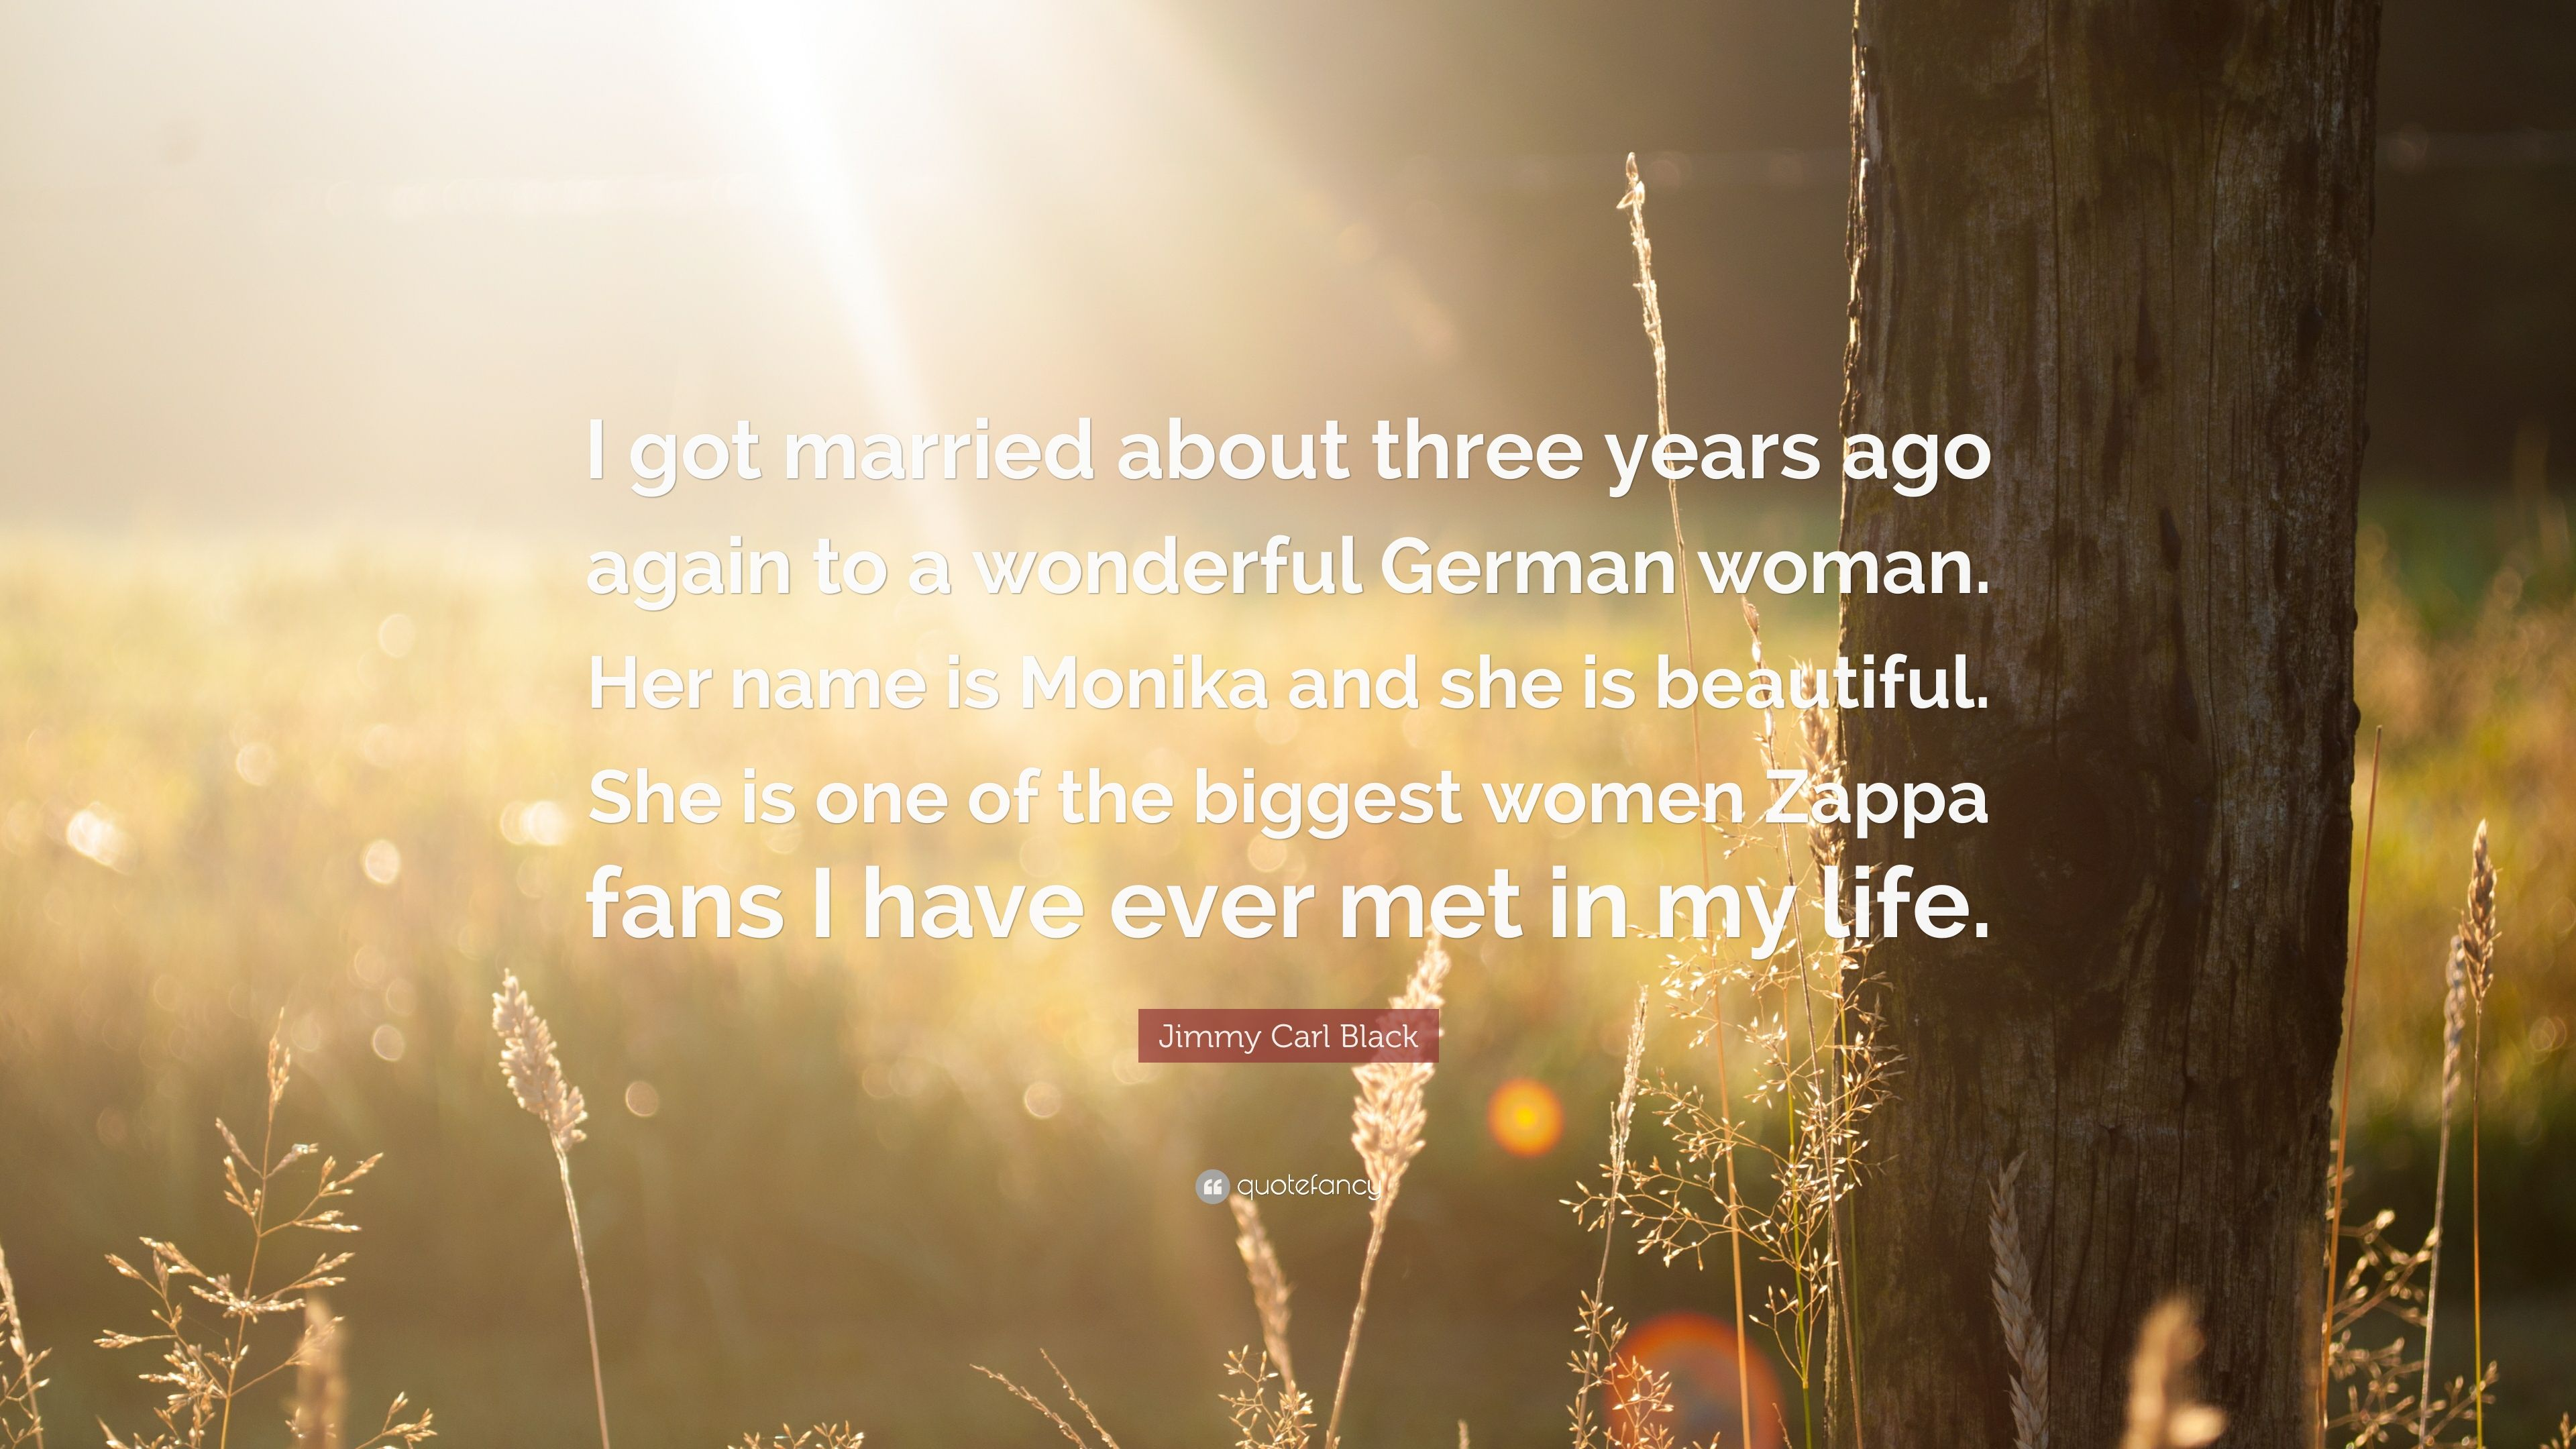 Fantastic Wallpaper Name Monika - 5320143-Jimmy-Carl-Black-Quote-I-got-married-about-three-years-ago-again  Graphic_999927.jpg